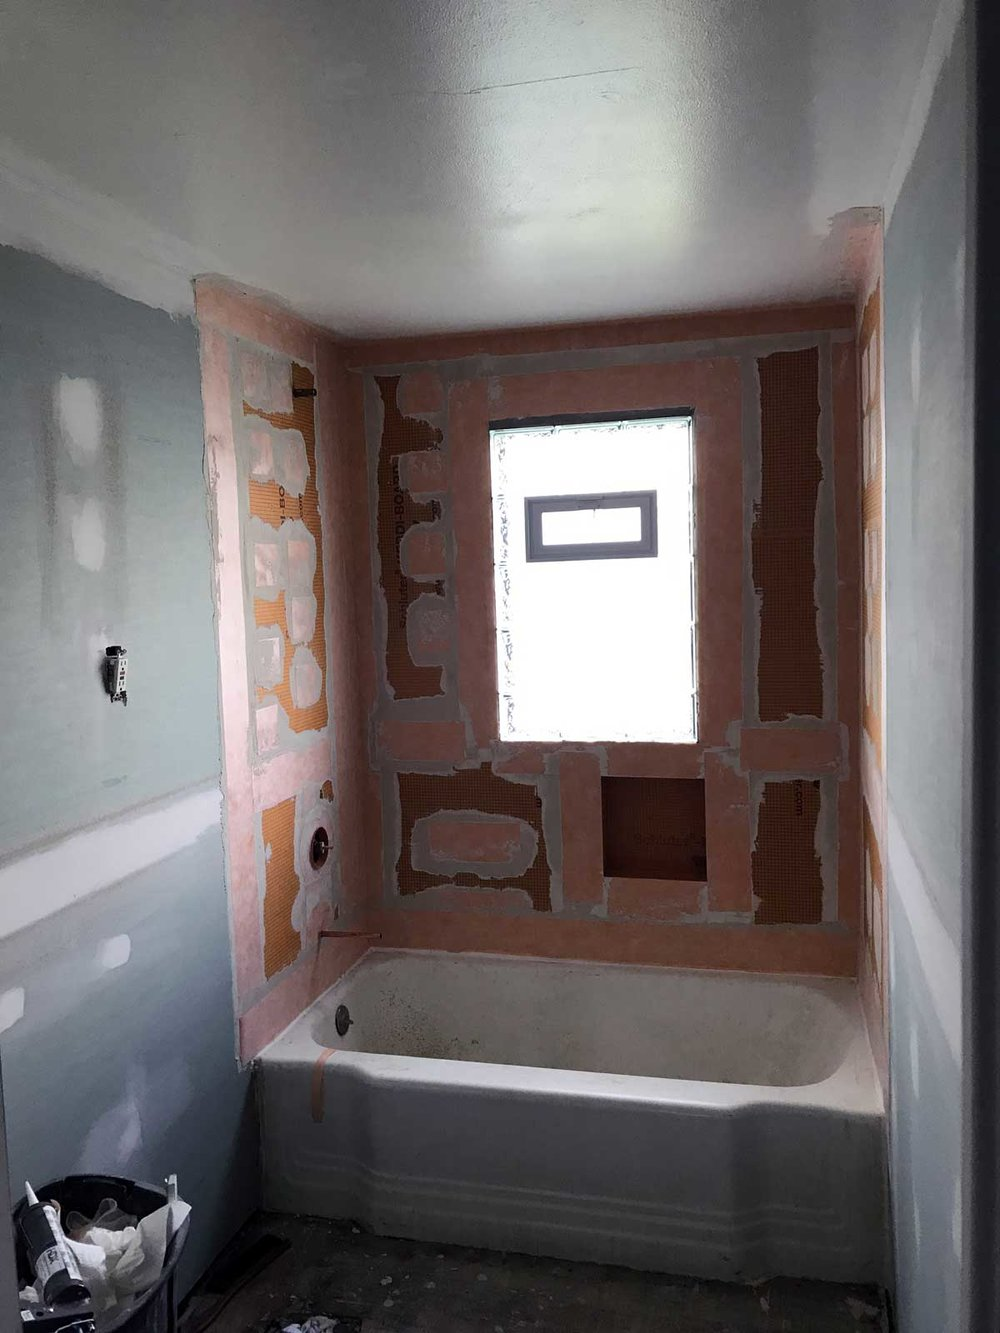 15-Day-Bathroom-Renovation-21.jpg